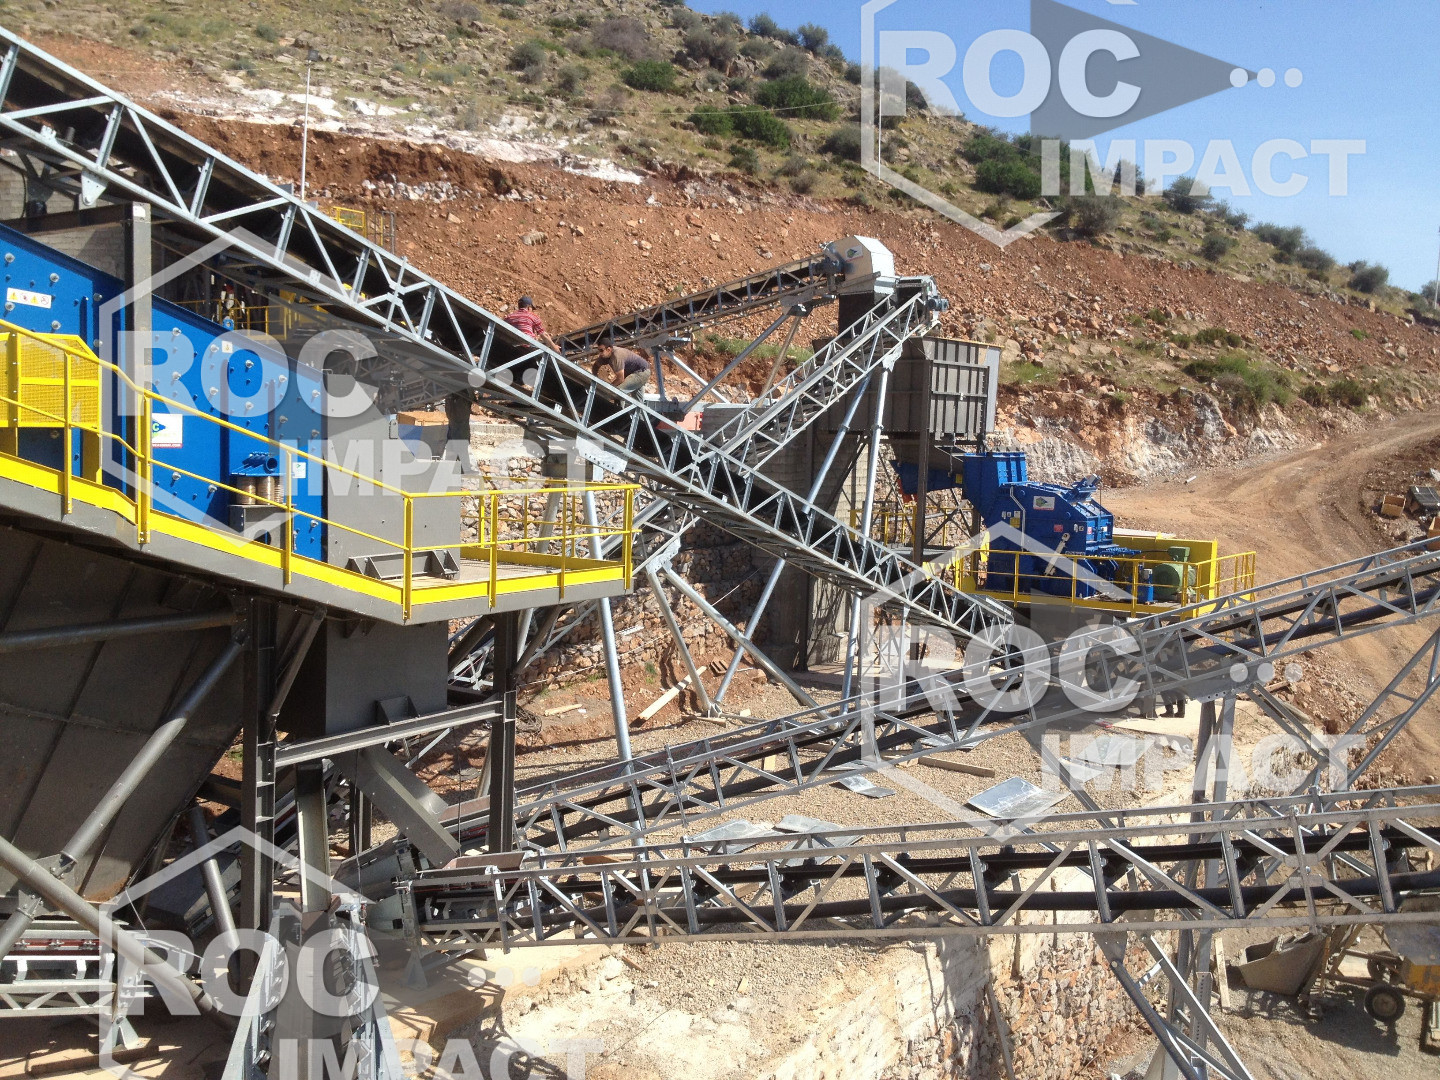 INSTALLATION DE CONCASSAGE CAPACITE DE 300 T/H DE 0/25 MM (DESTINATION ALGERIE)